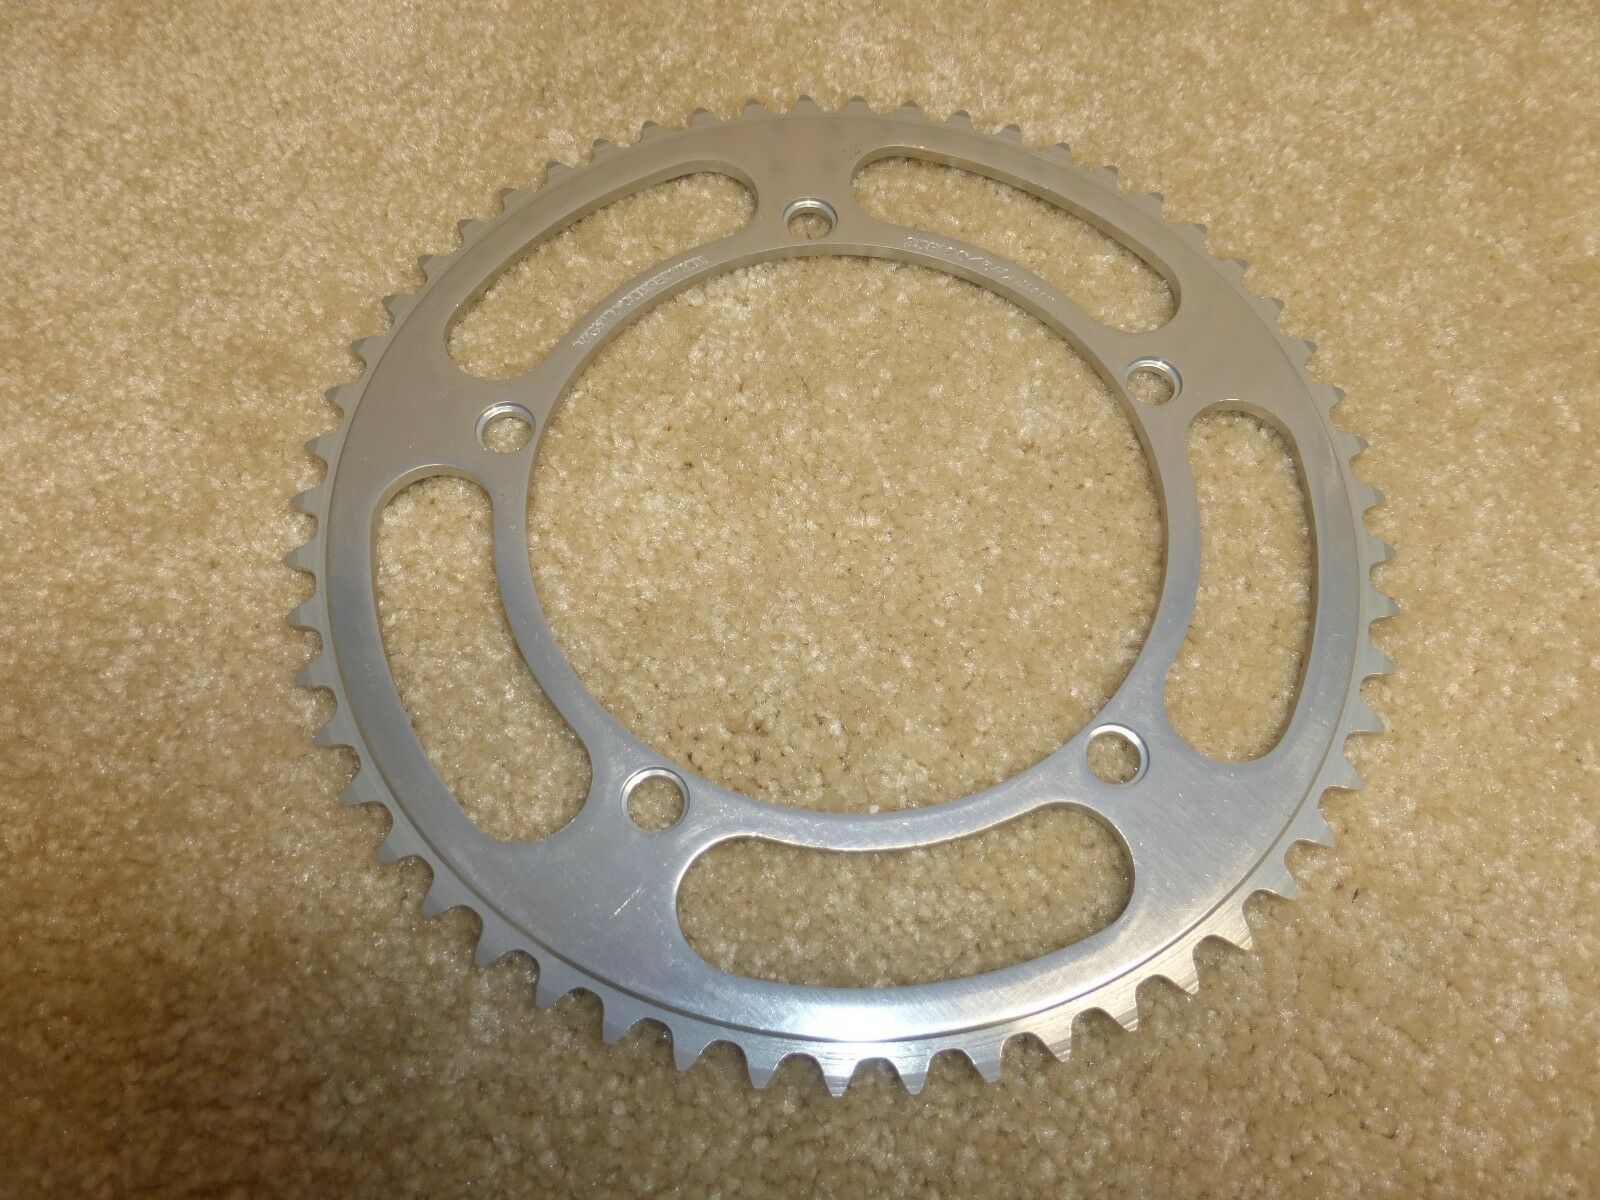 Rare - Vintage -  Sugino Mighty Competition 54 t. Chainring -  NOS  - 144 BCD  retail stores